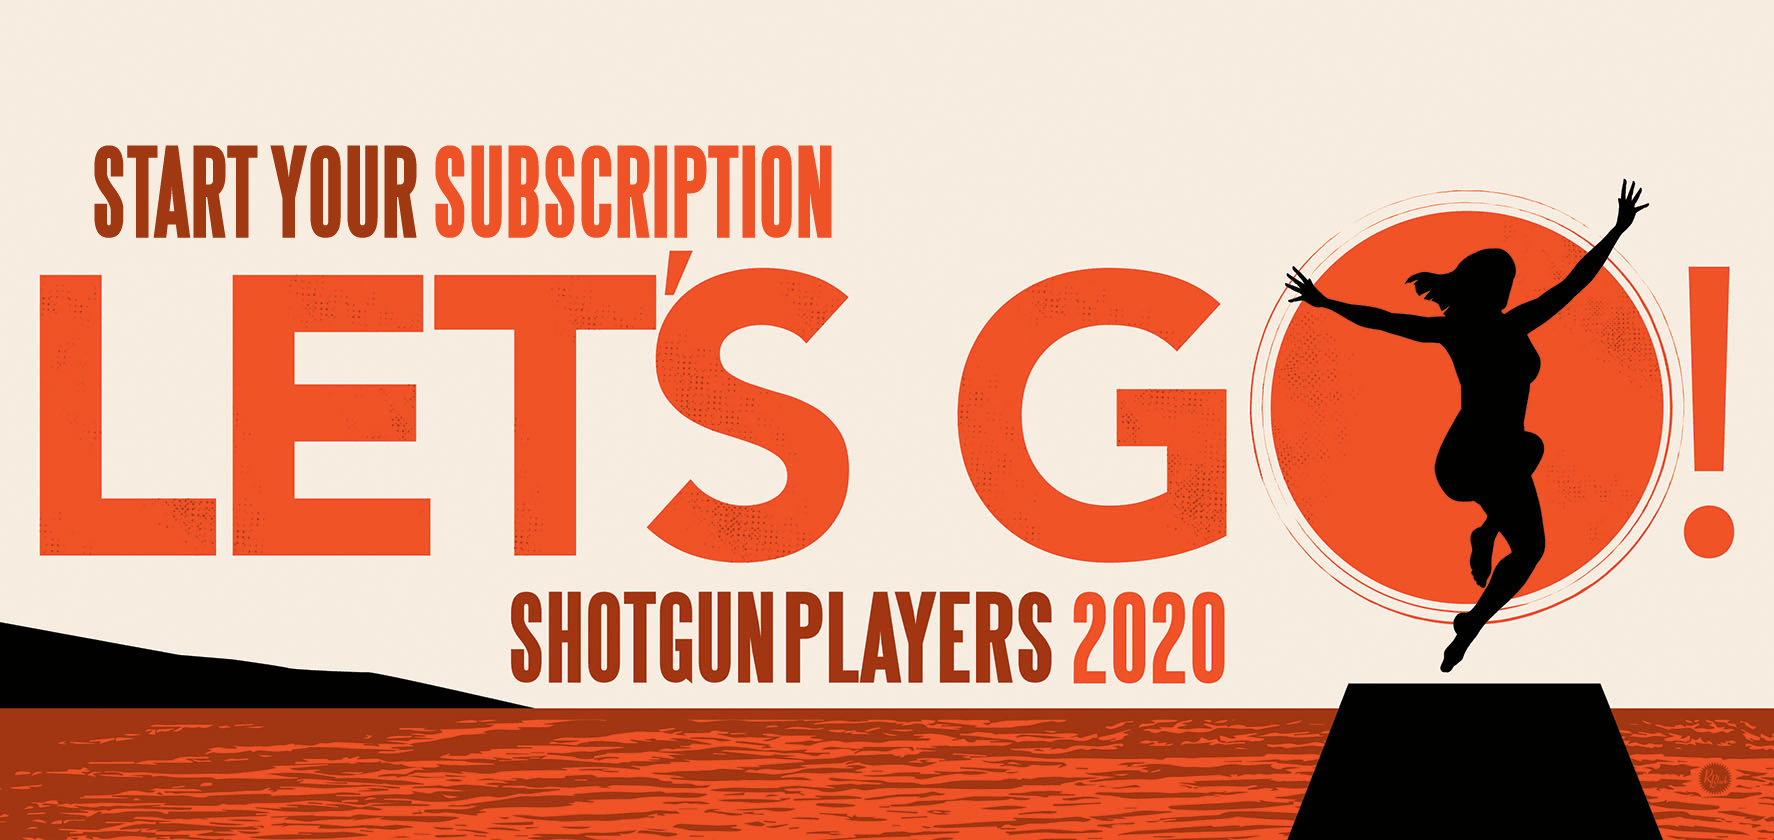 Start your subscription. Let's go! Shotgun Players 2020 season.